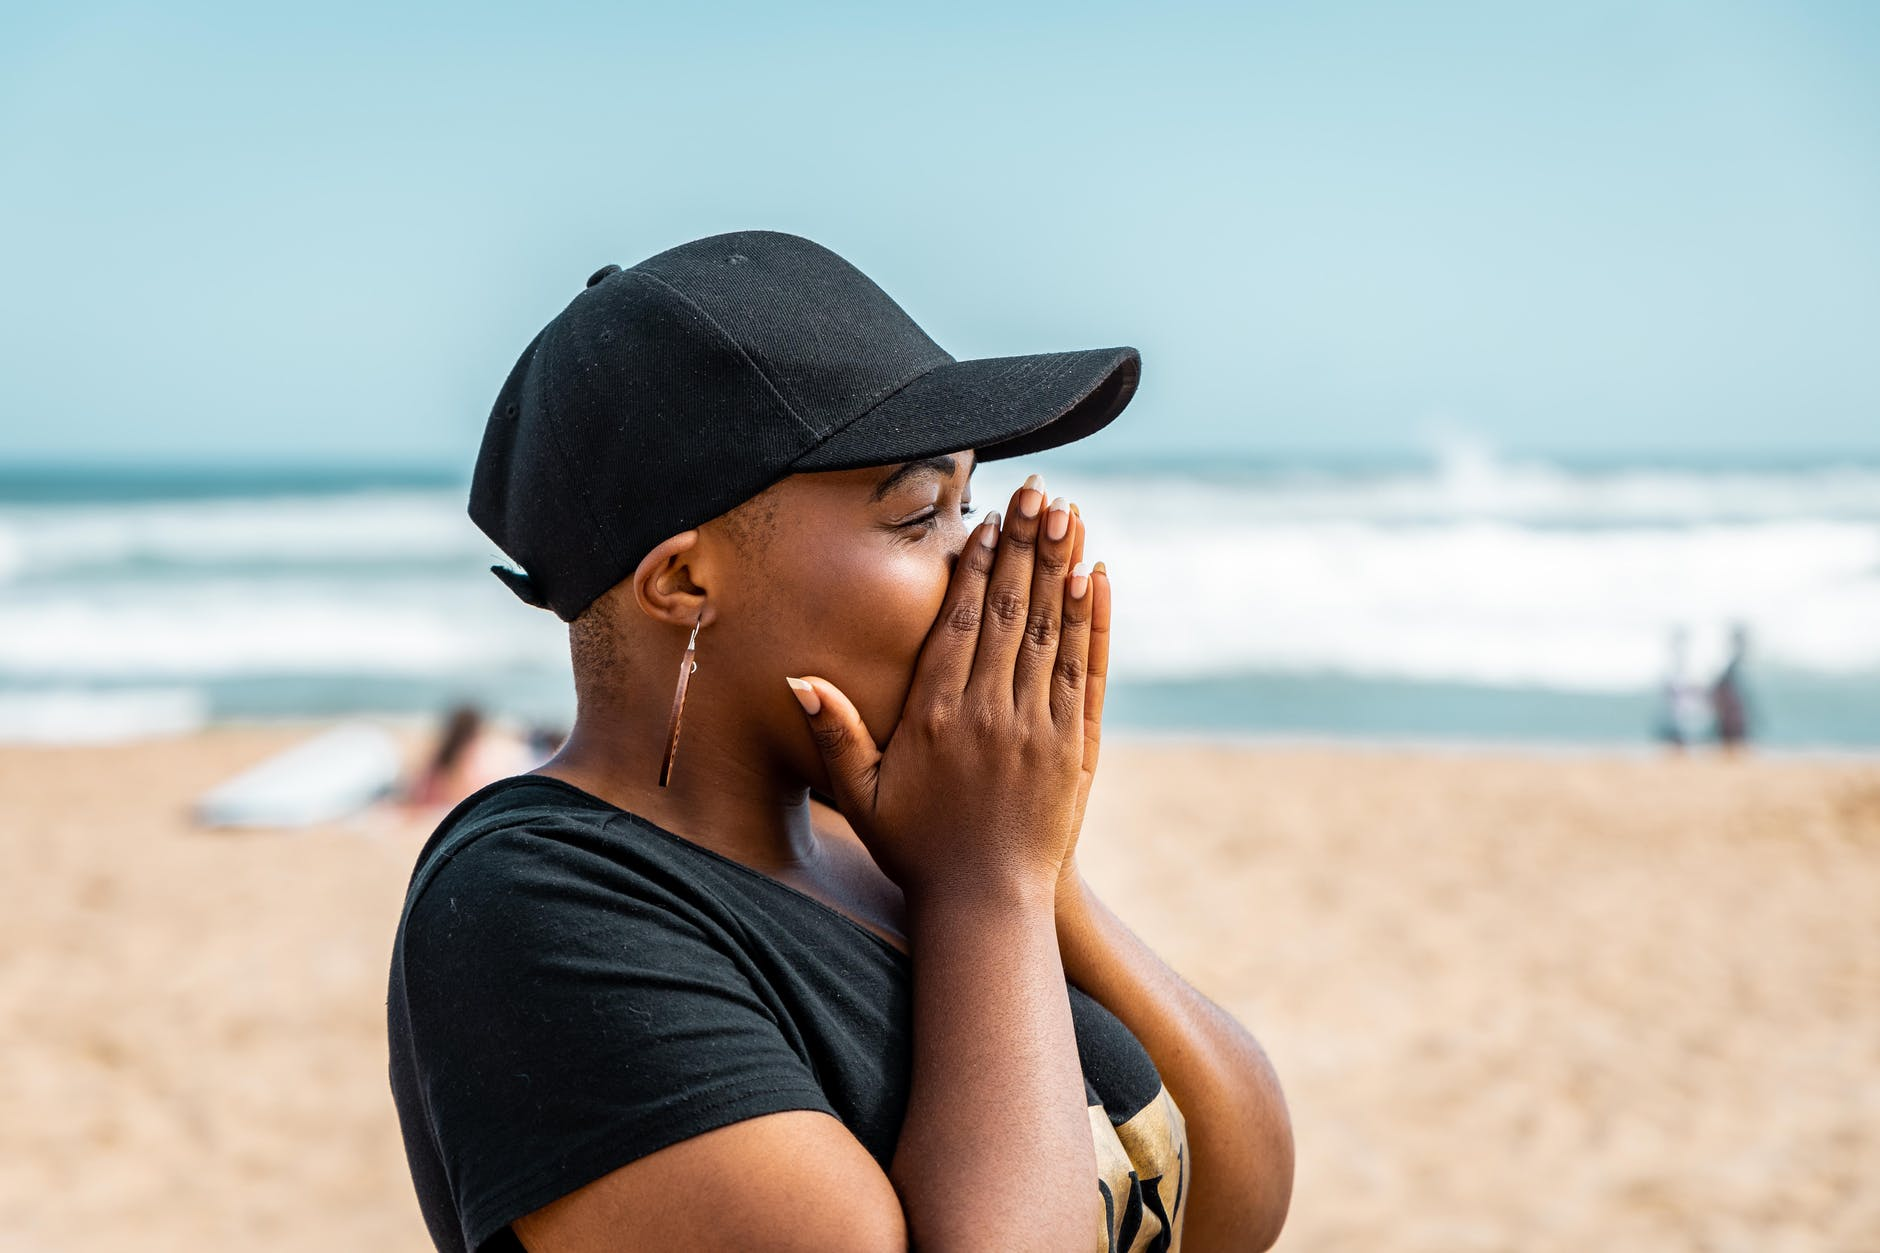 Black woman covering her face at beach